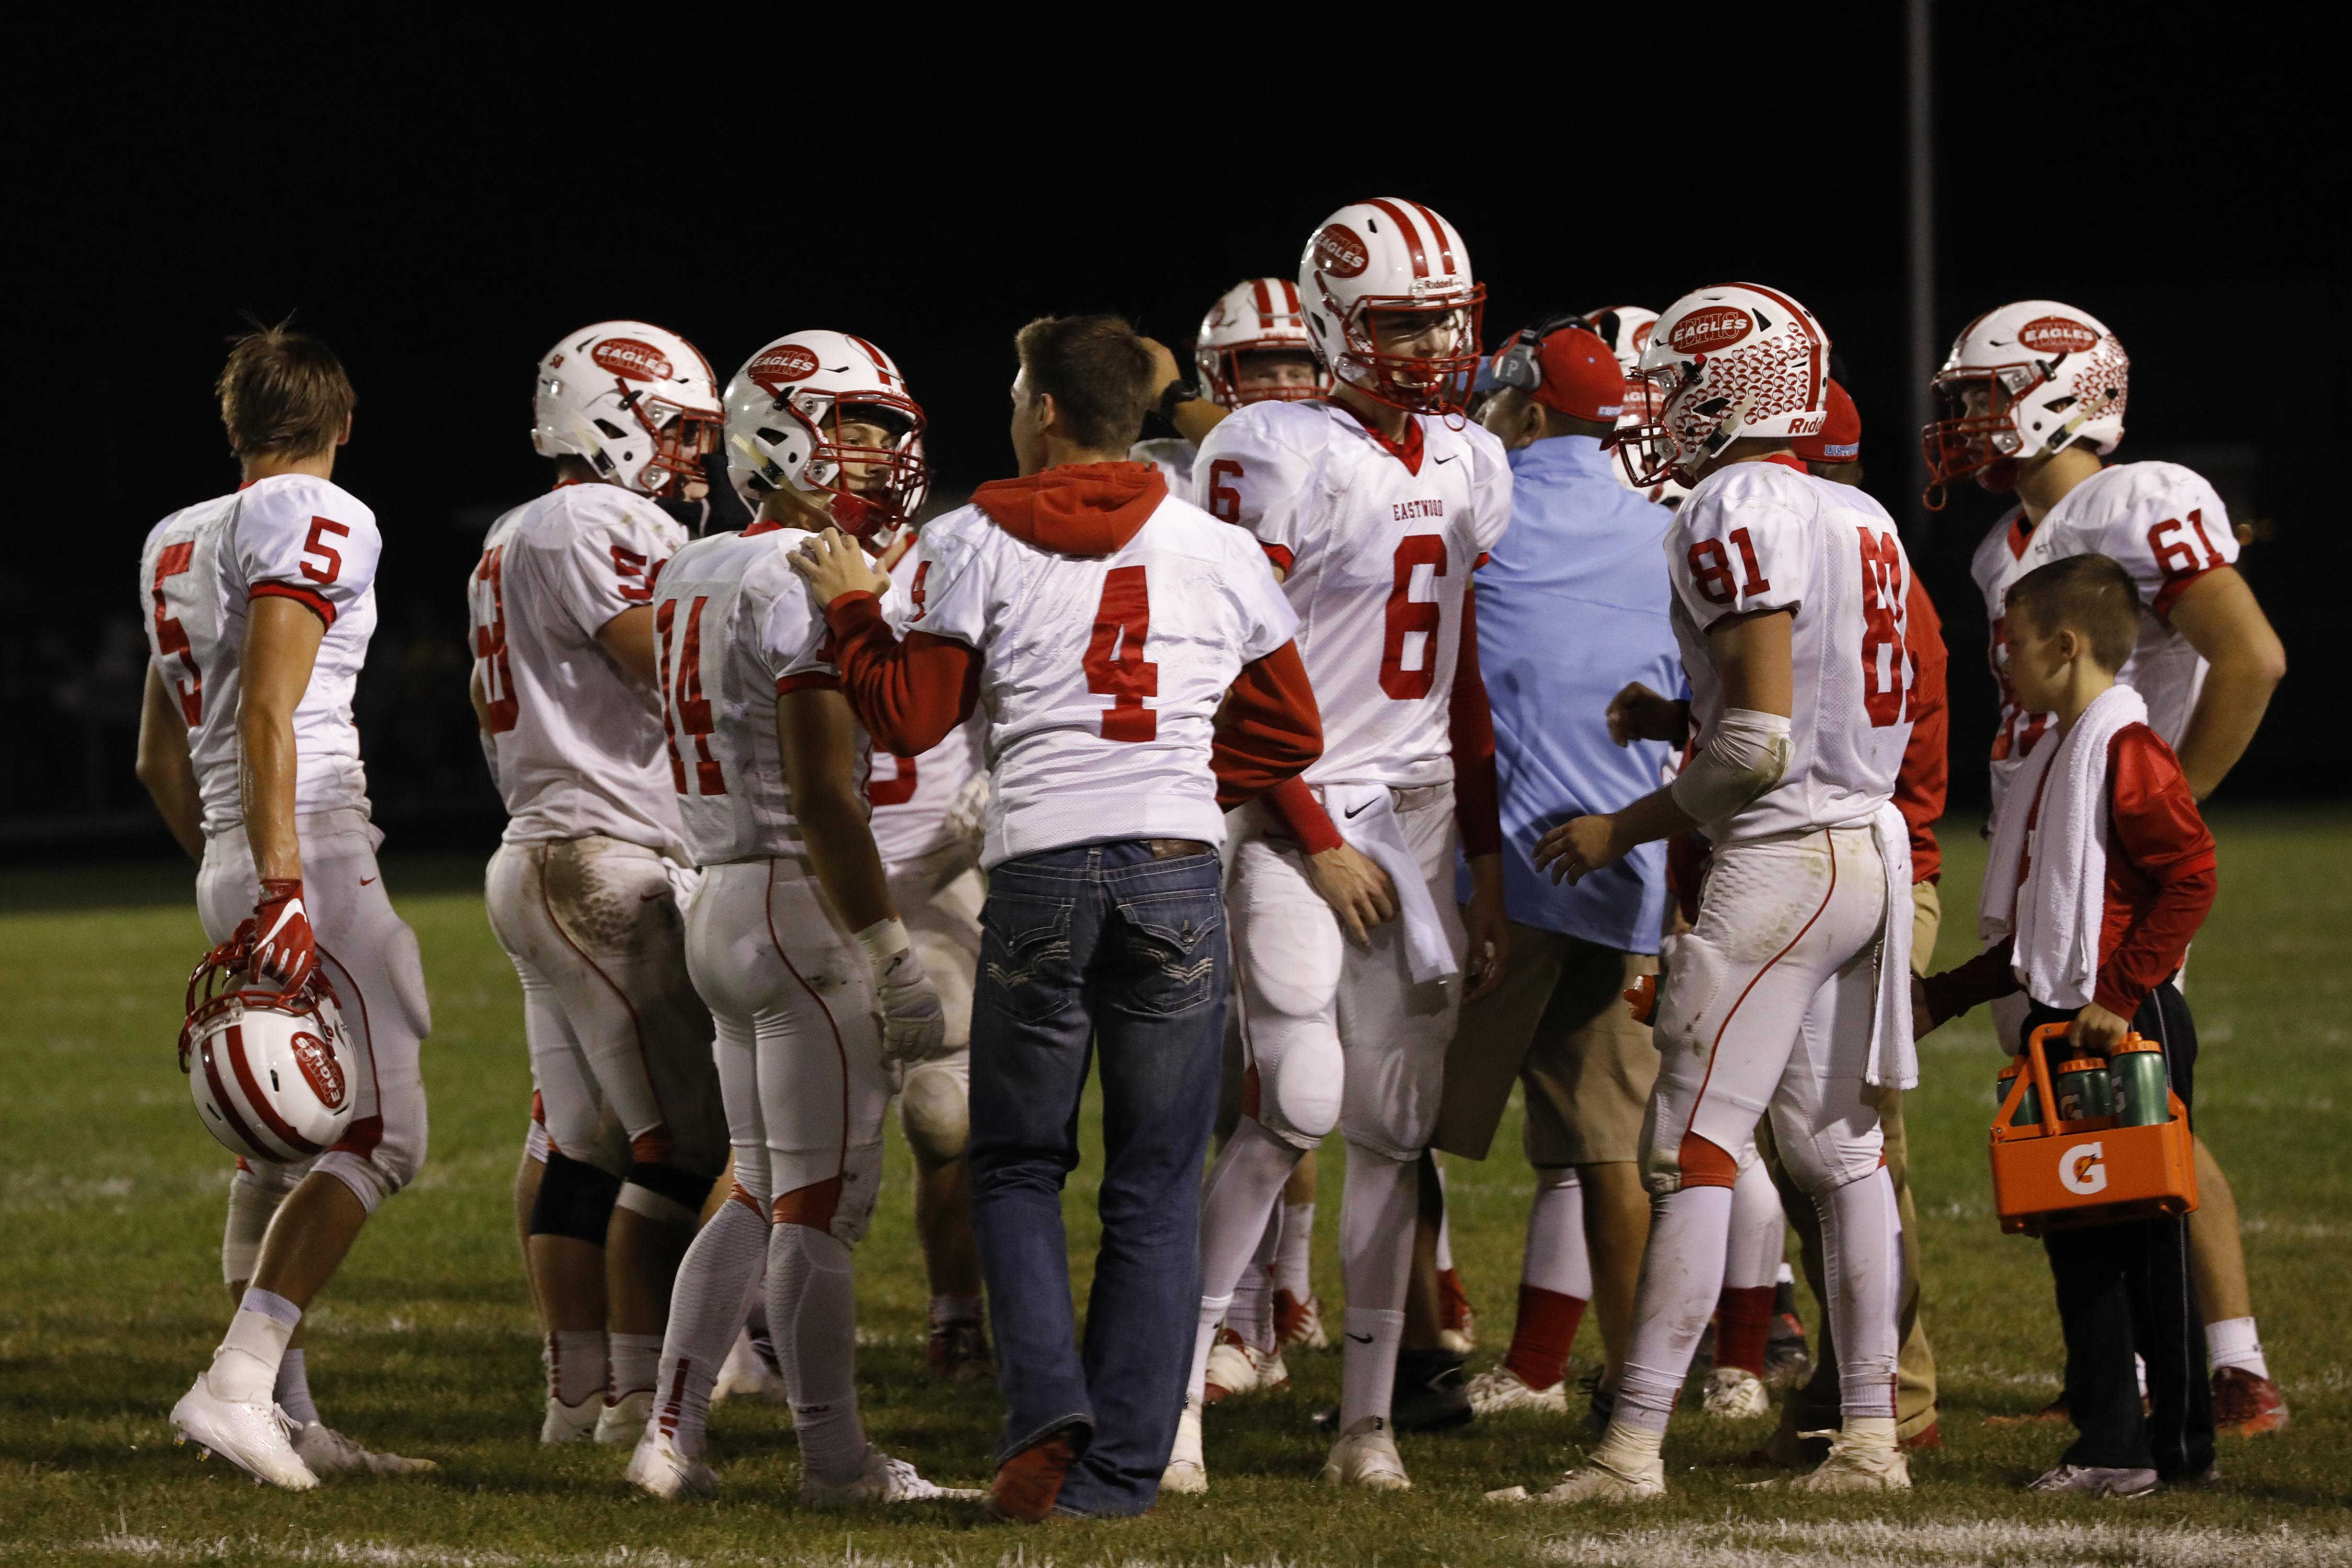 Eastwood senior Cade Boos (4) hopped out on one foot to talk with teammate Alex Ross (14) in the huddle during the game vs. Otsego THE BLADE/KATIE RAUSCH